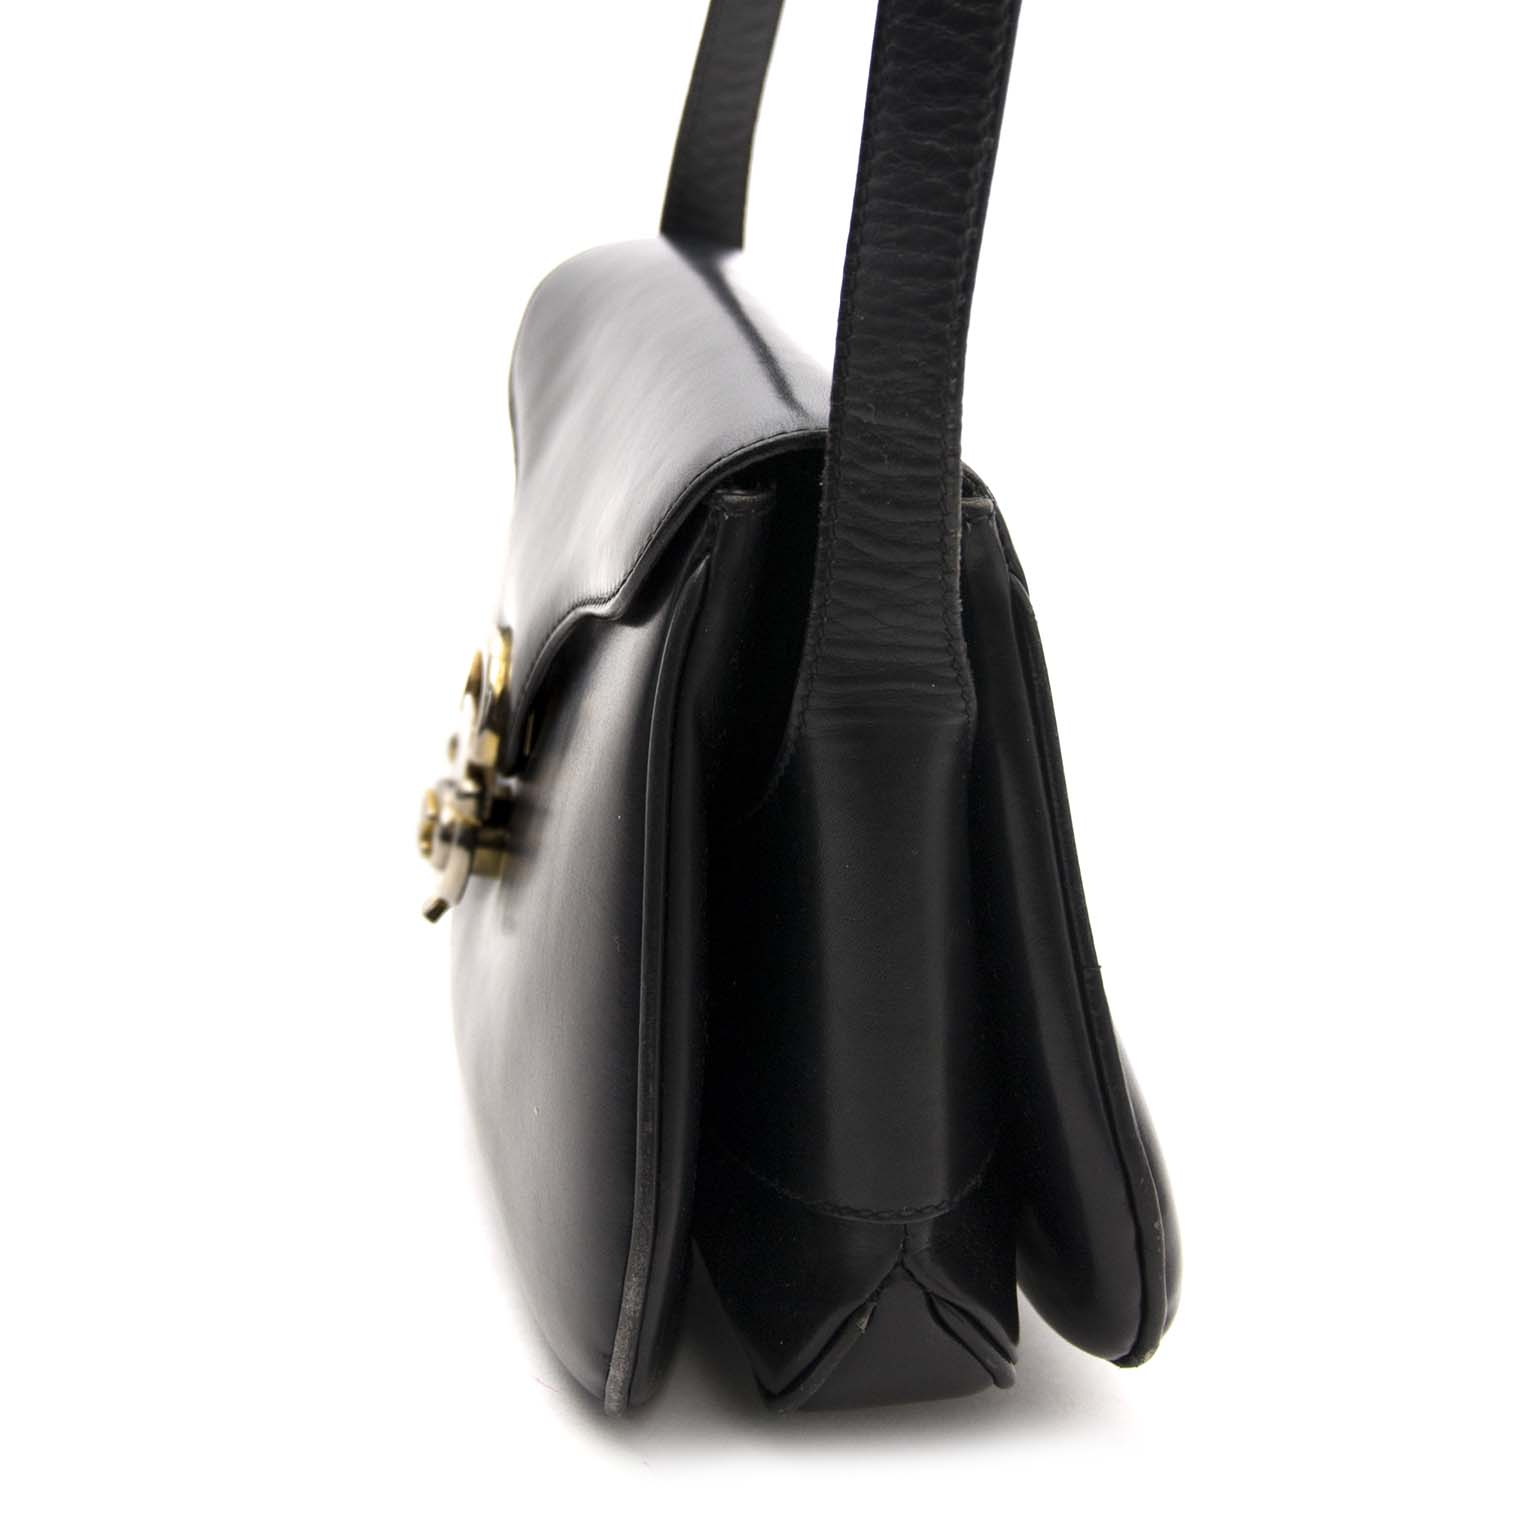 buy safe and secure online at labellov.com for the best price celine black leather box bag